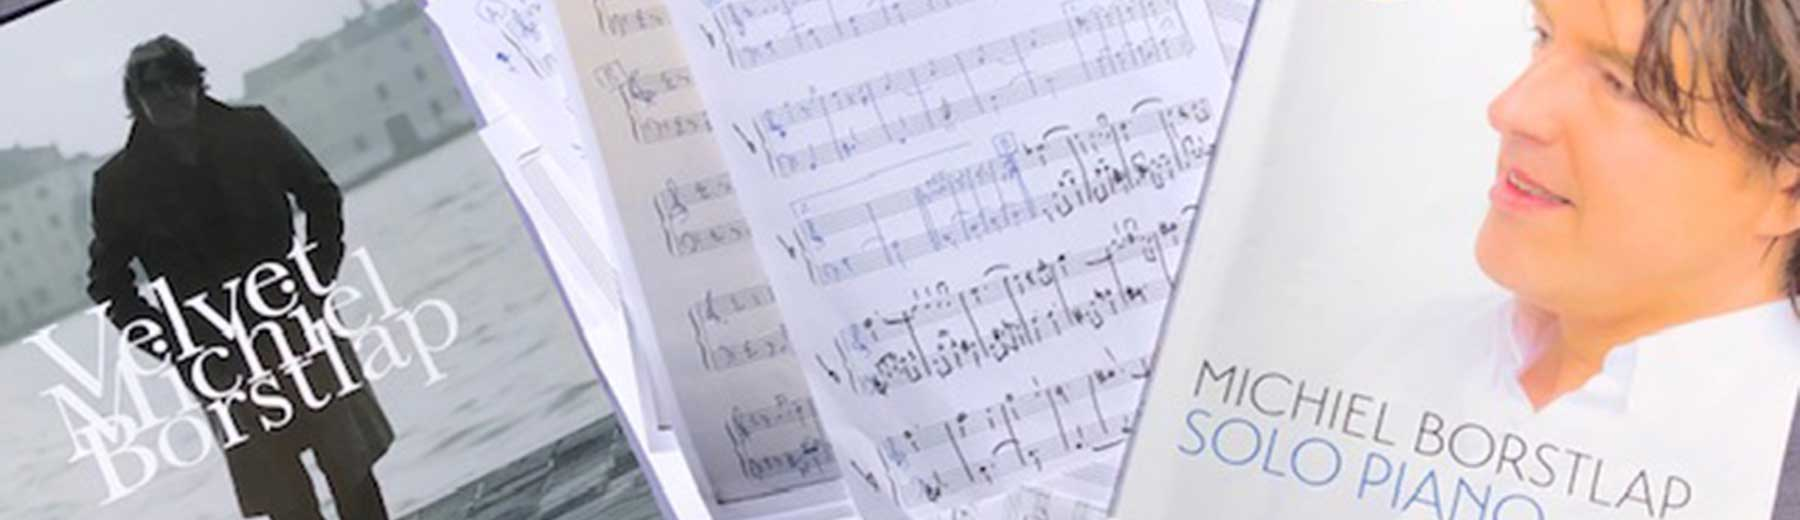 banner sheetmusic 1800x520